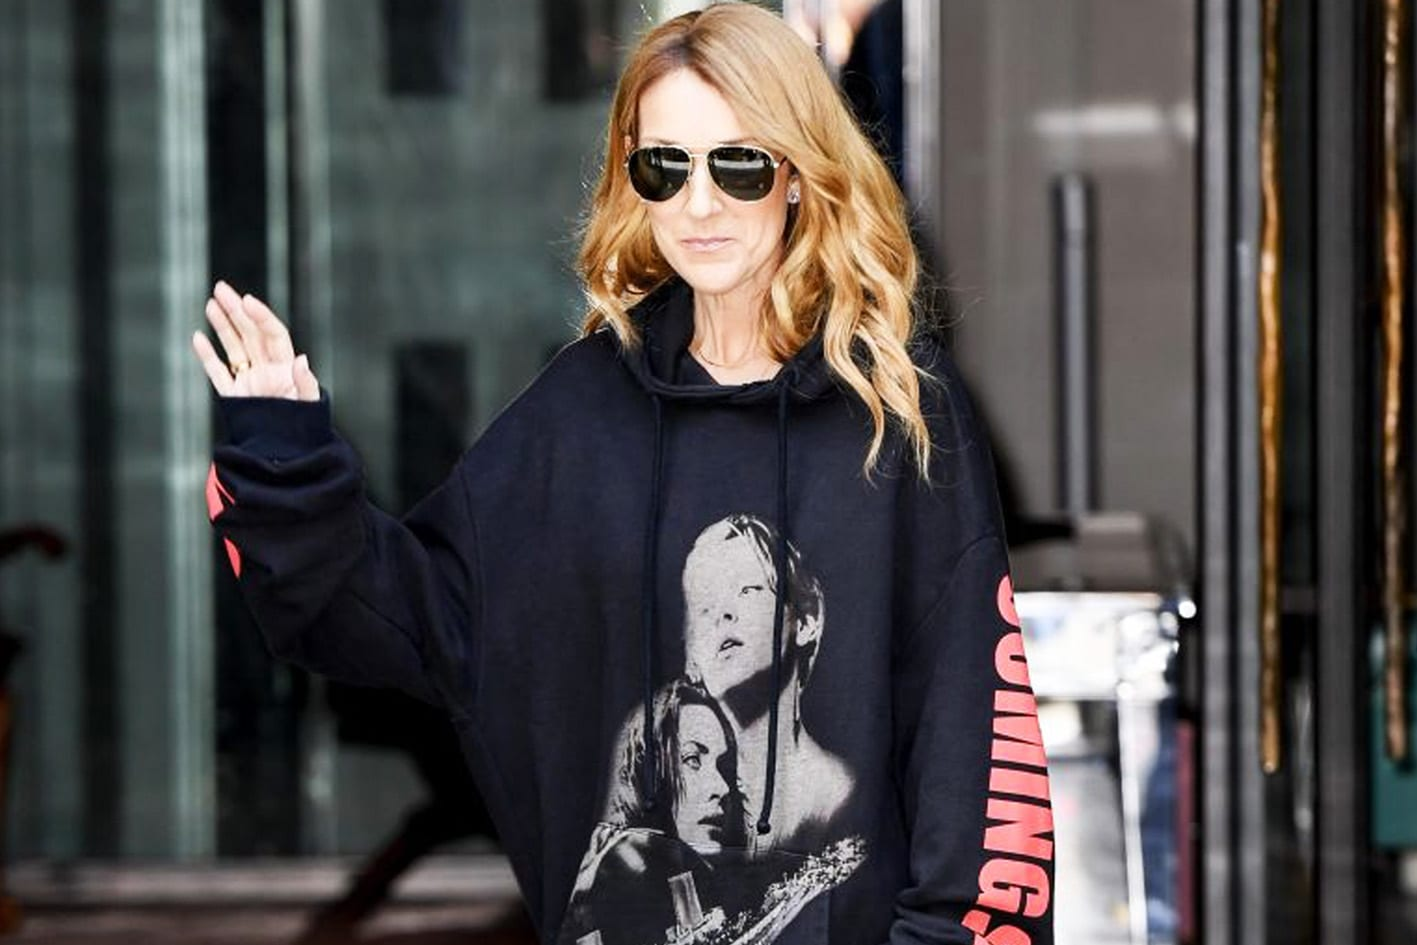 celine-dion-vetements-hoodie-titanic-paris-couture-fashion-week-style-antidote